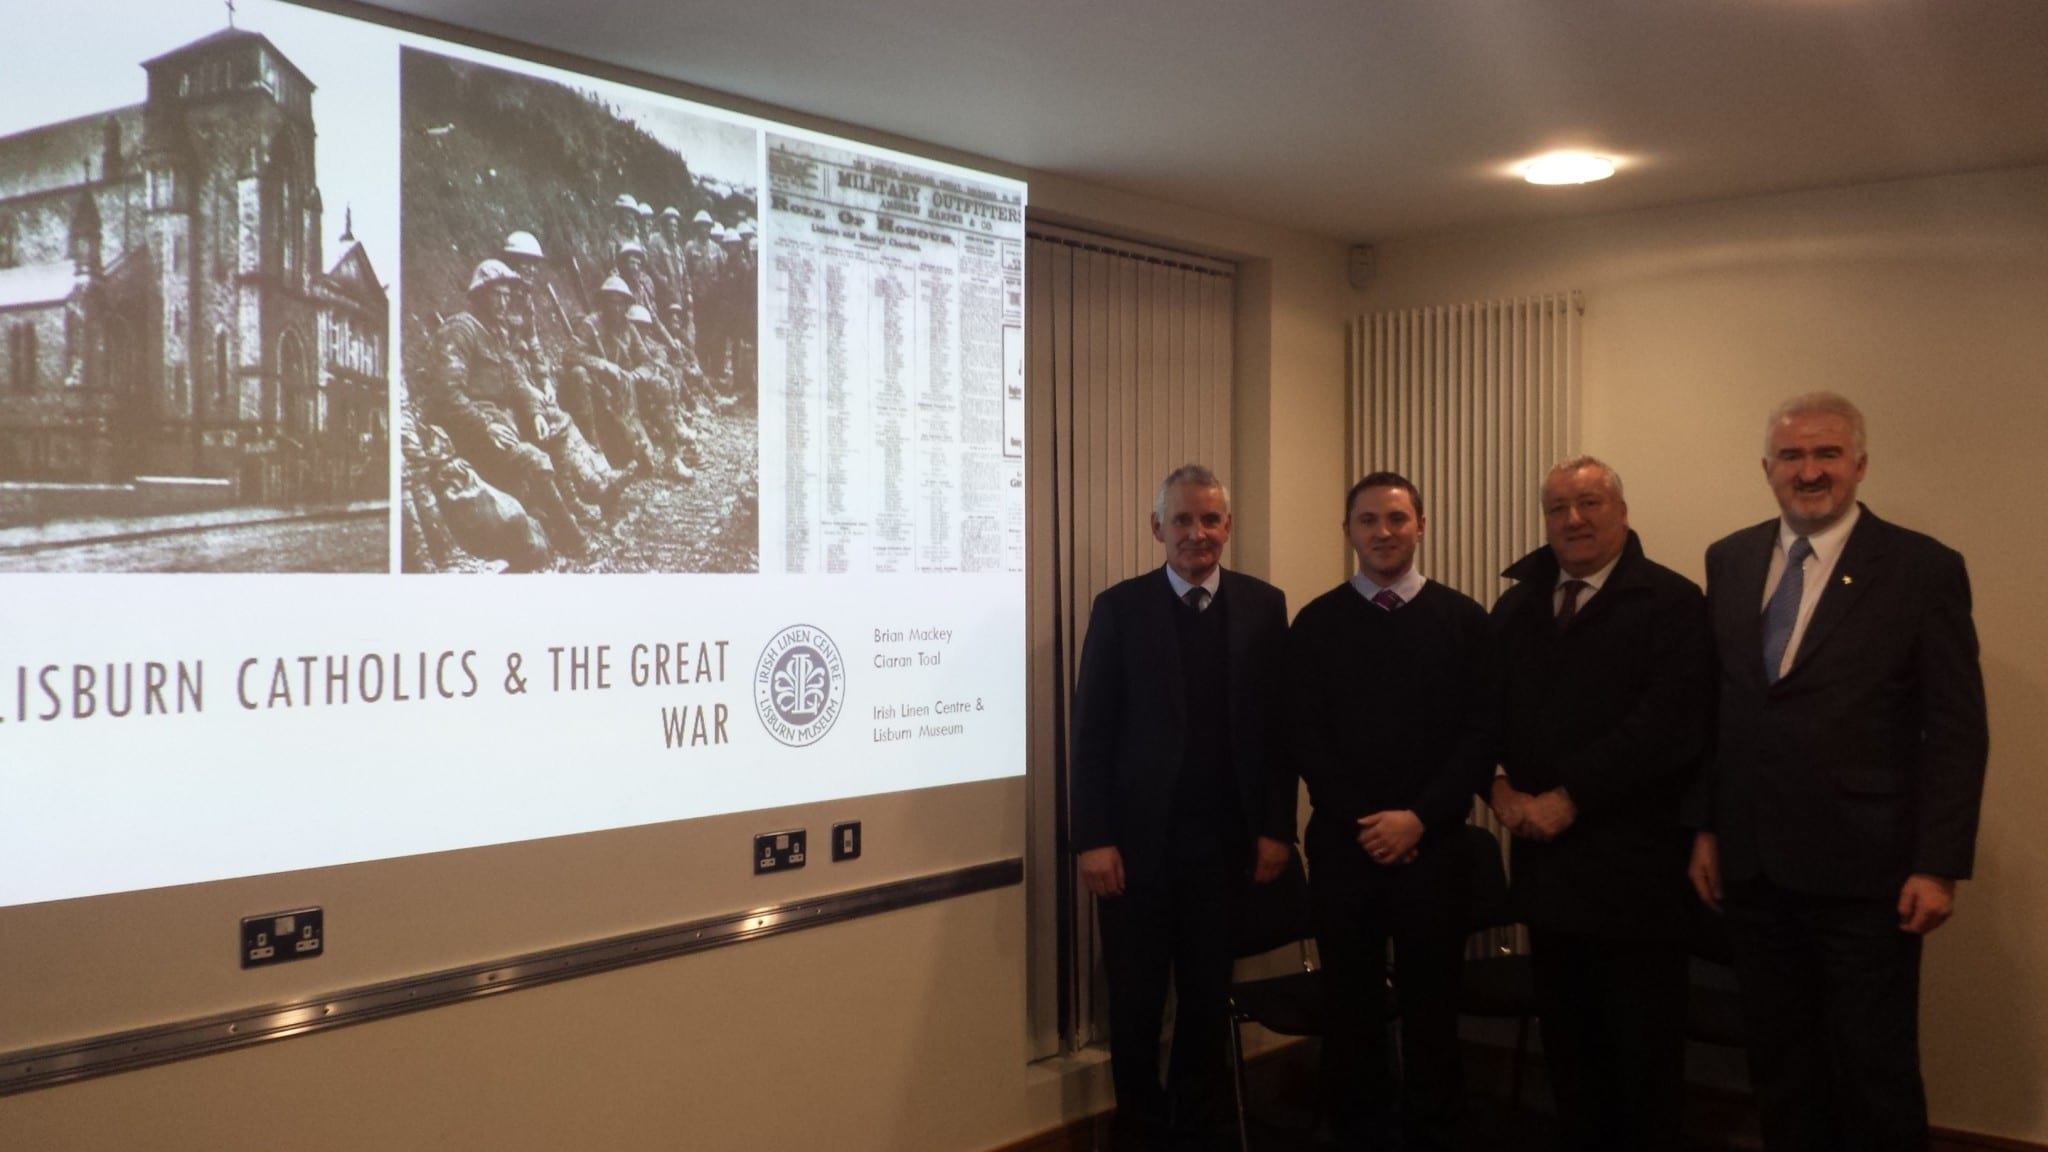 Launch of teh research project: Brian Mackey, Ciaran Toal, SDLP, DUP, Lisburn Cathgolics and the Great War